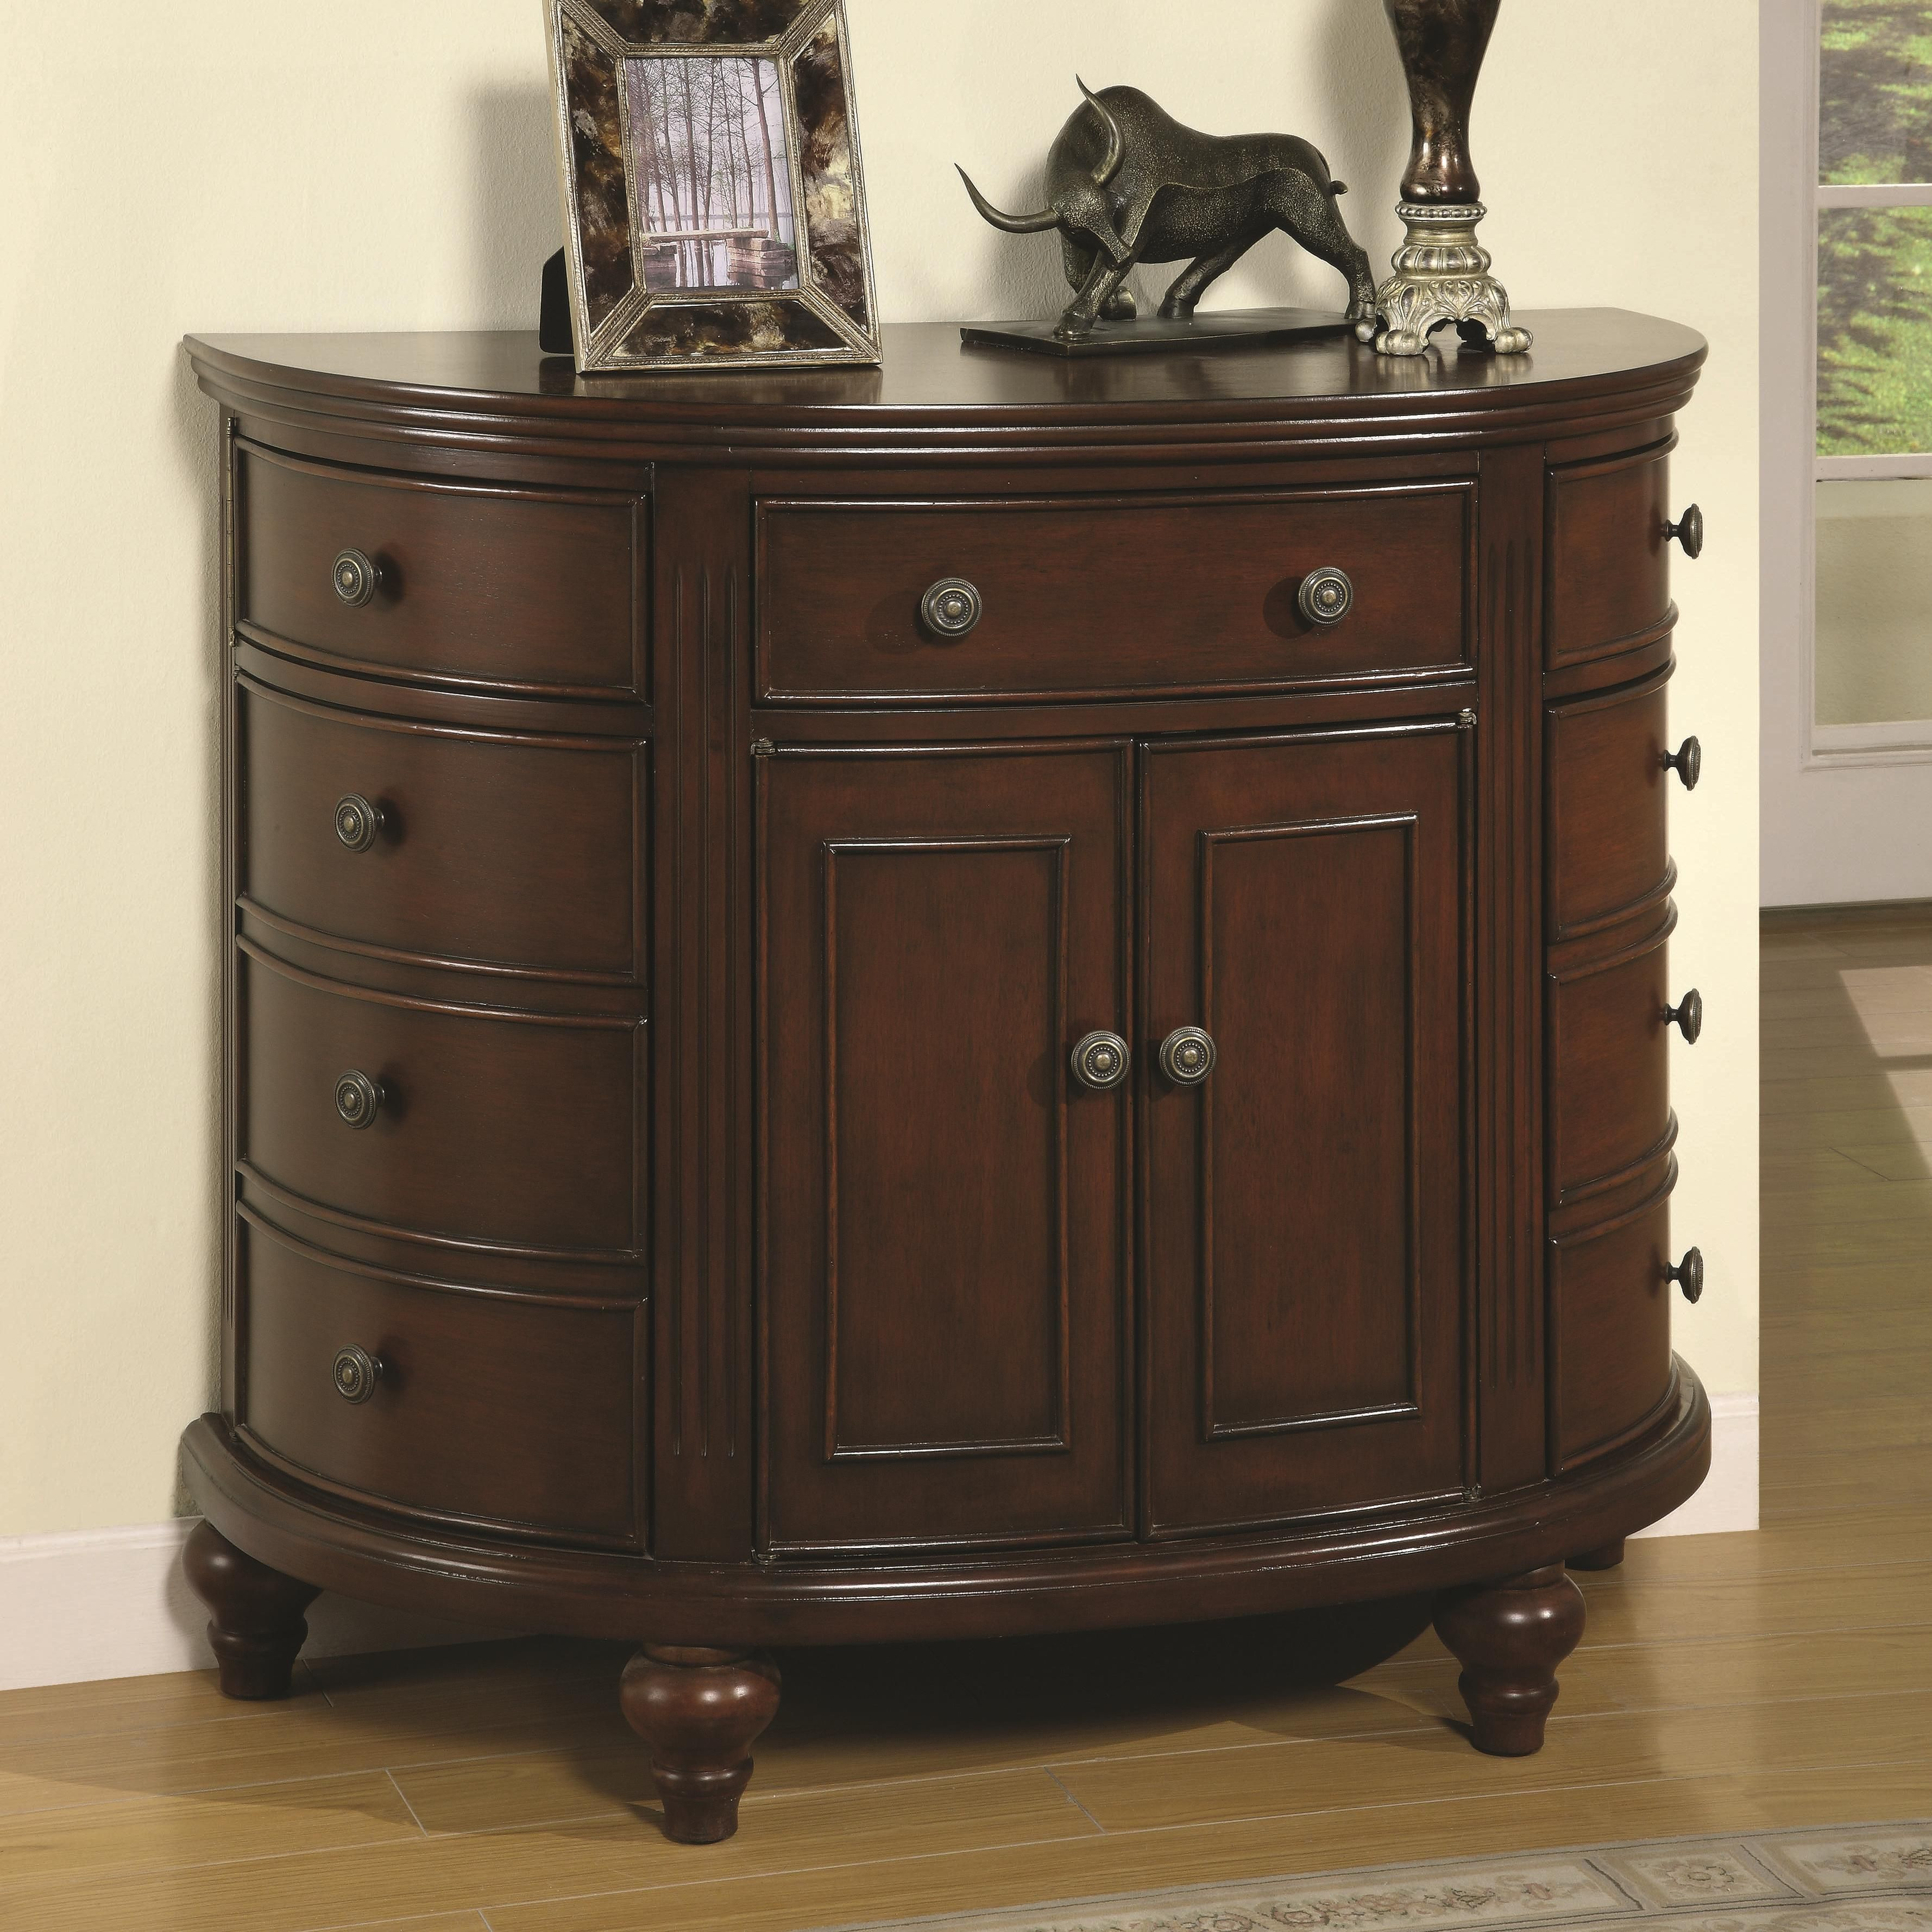 Simple And Sophisticated This Accent Cabinet Will Make A Great Addition In Your Bedroom Entryway Or Living Room F Furniture Coaster Furniture Accent Cabinet